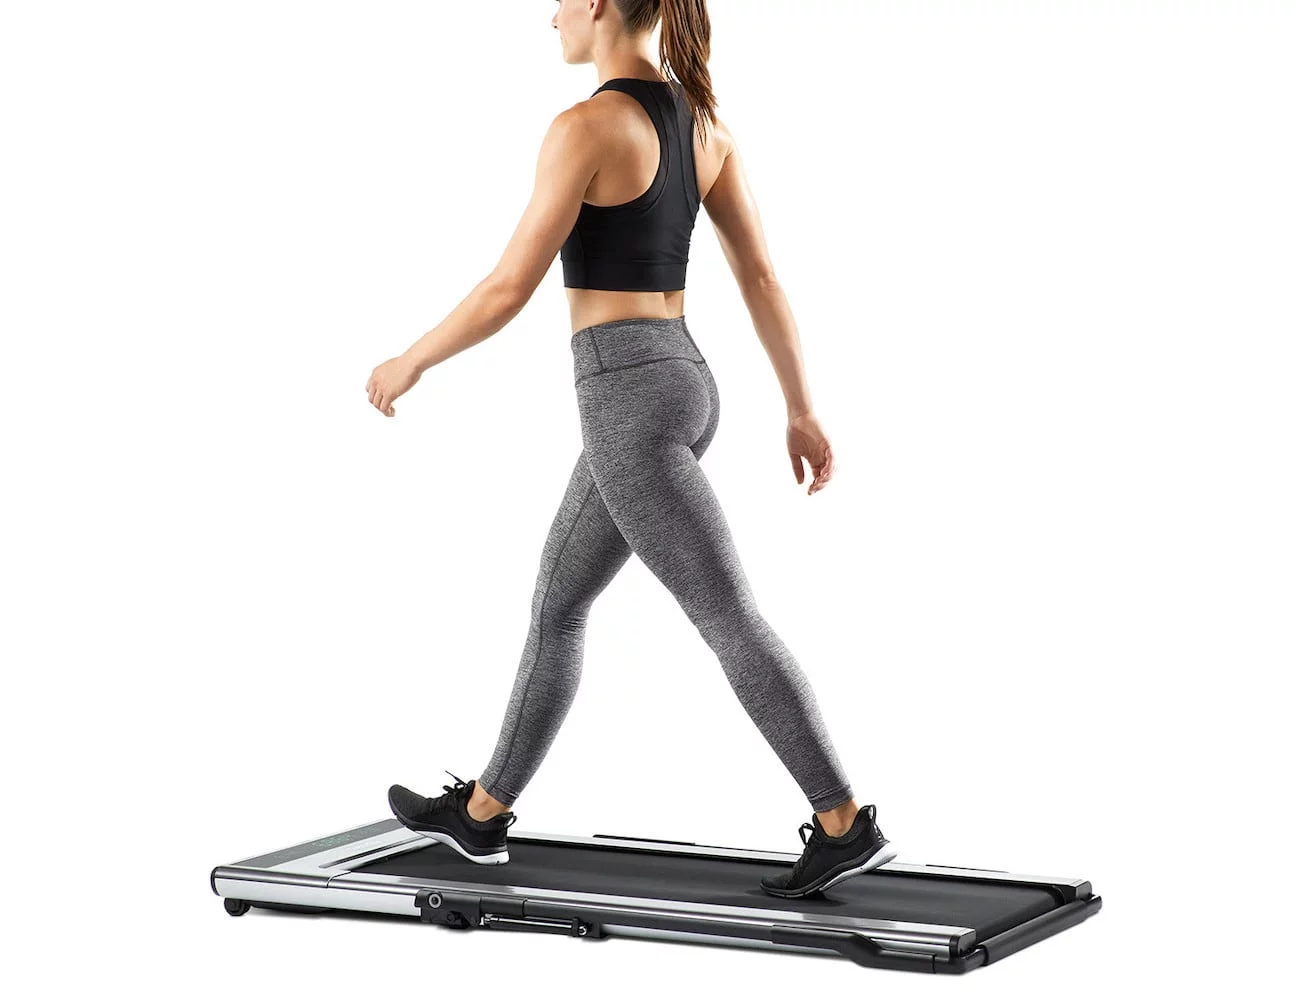 Treadly Ultra-Thin Compact Treadmill